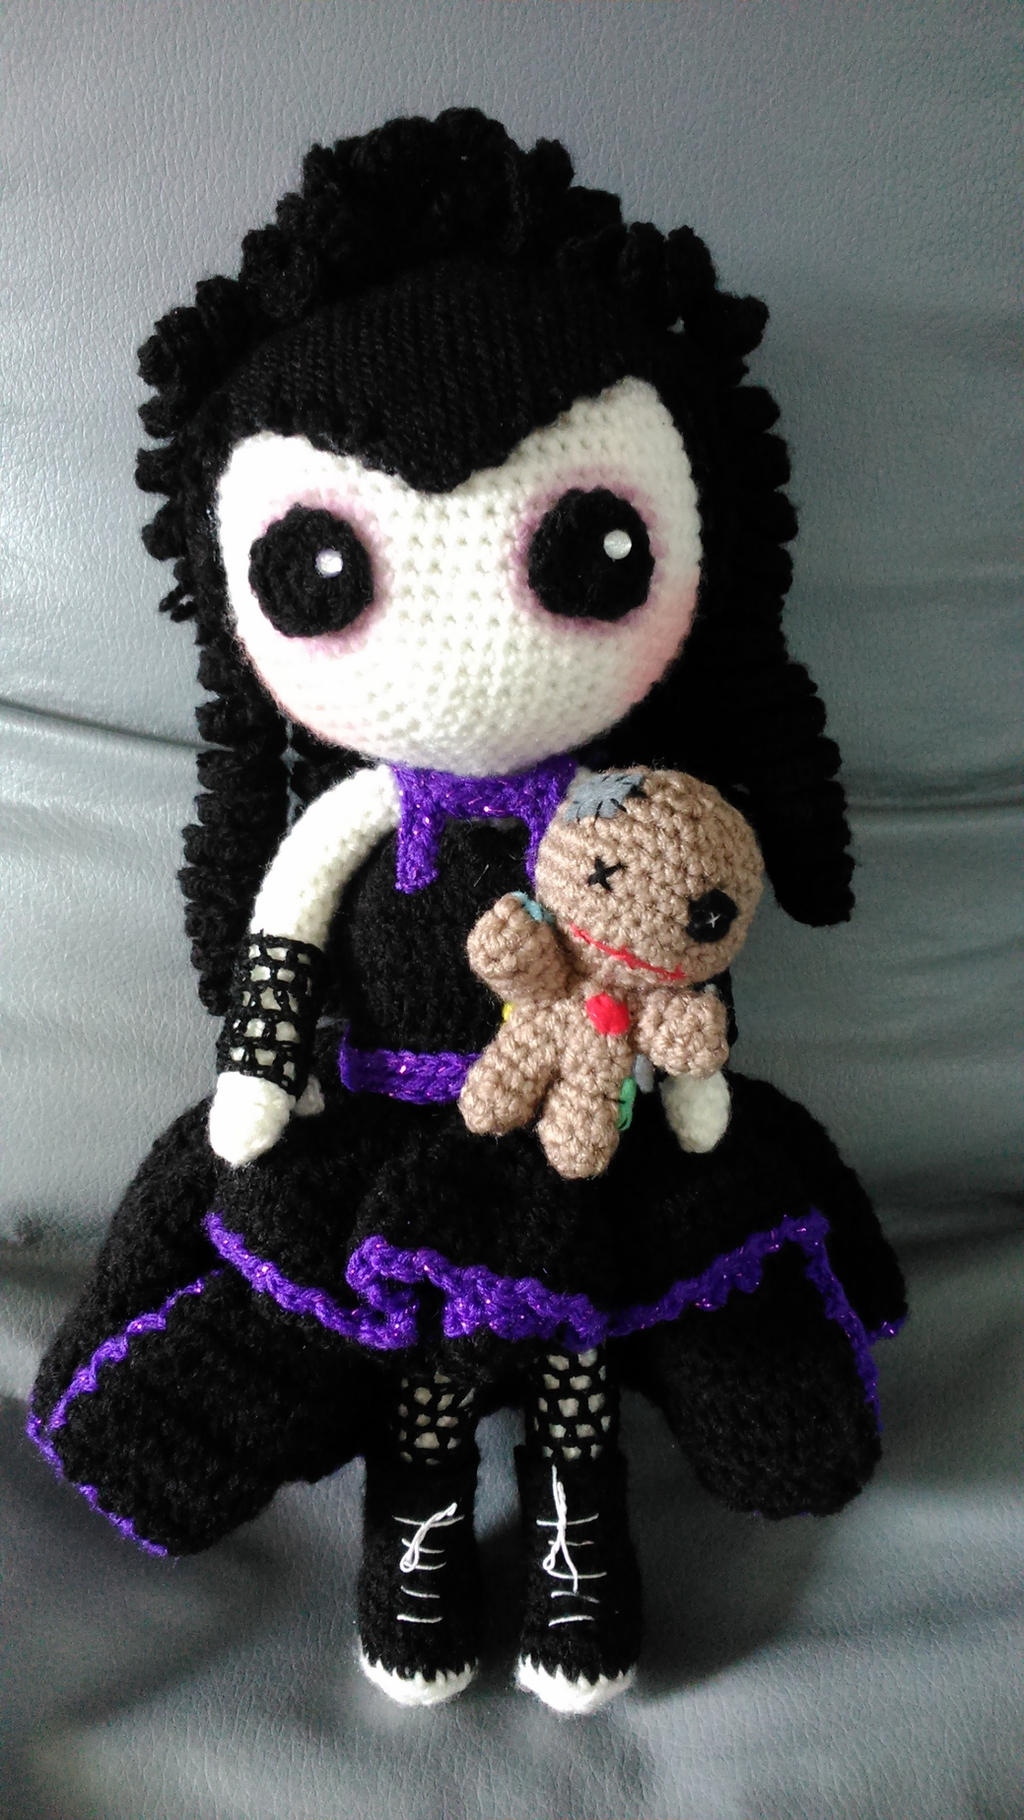 Crochet Amigurumi Voodoo Doll : Gothic Amigurumi doll with Voodoo doll by Anaseed on ...